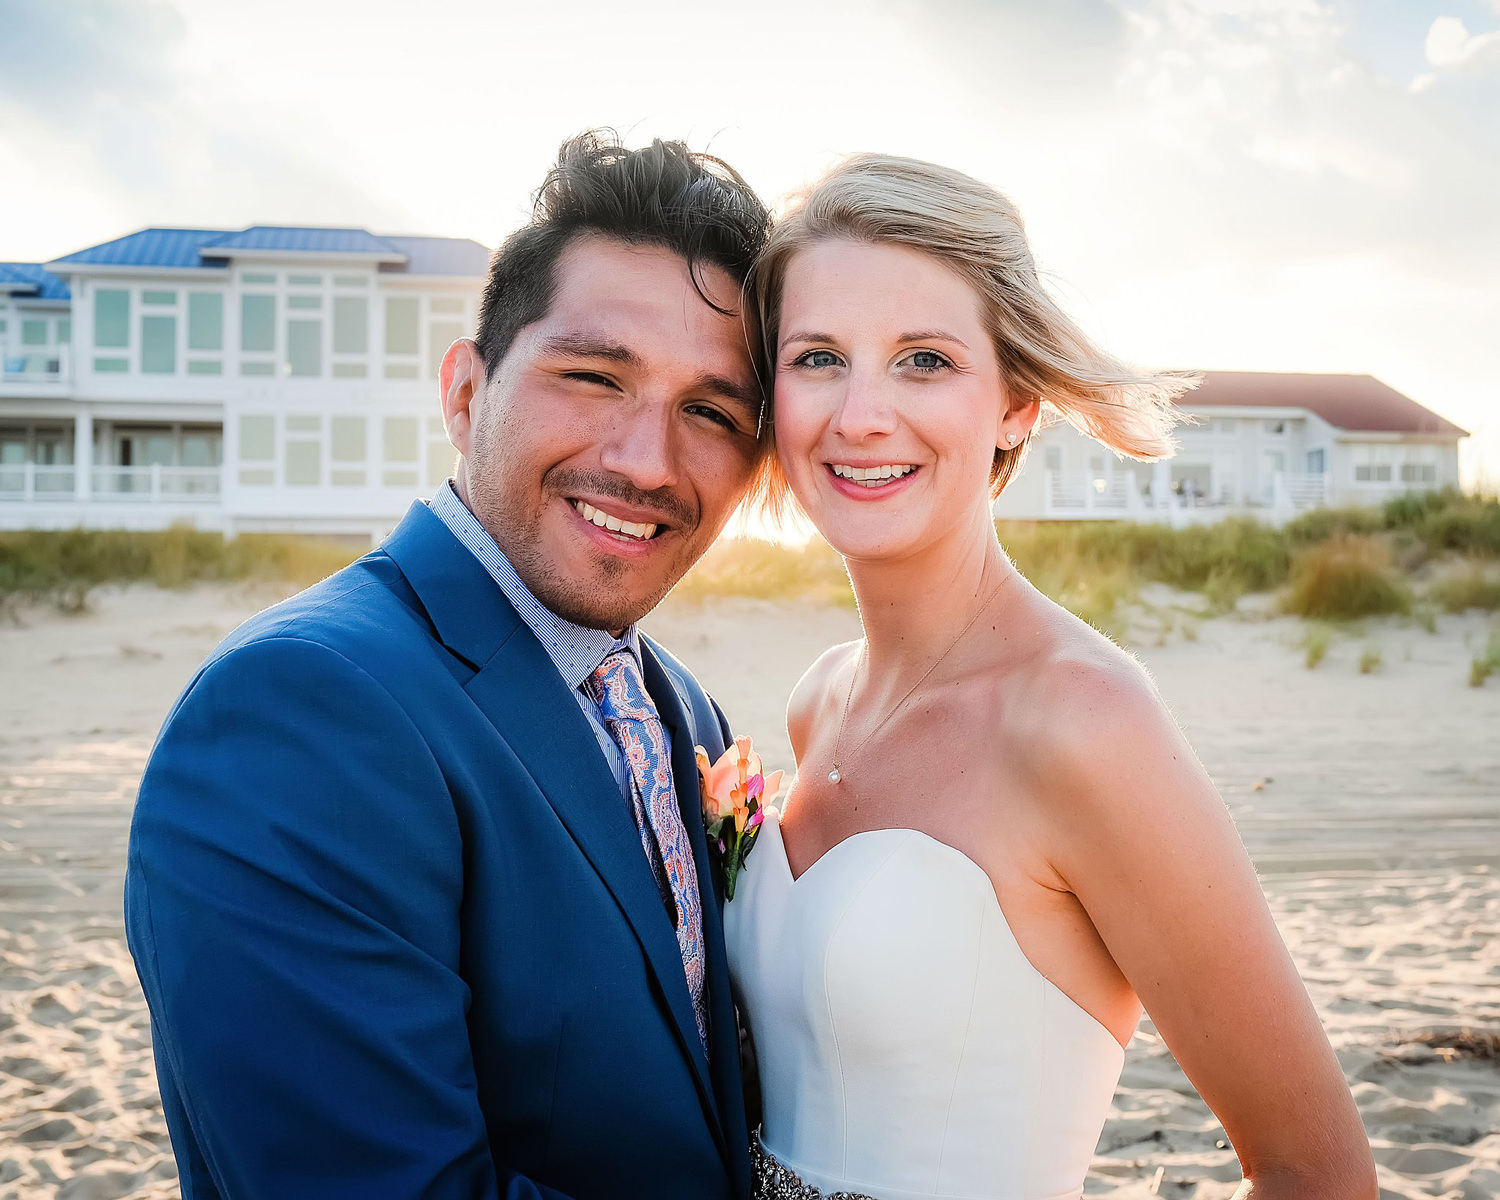 destination-sandbridge-beach-wedding-VA-wedding-photographer-melissa-bliss-photography.jpg